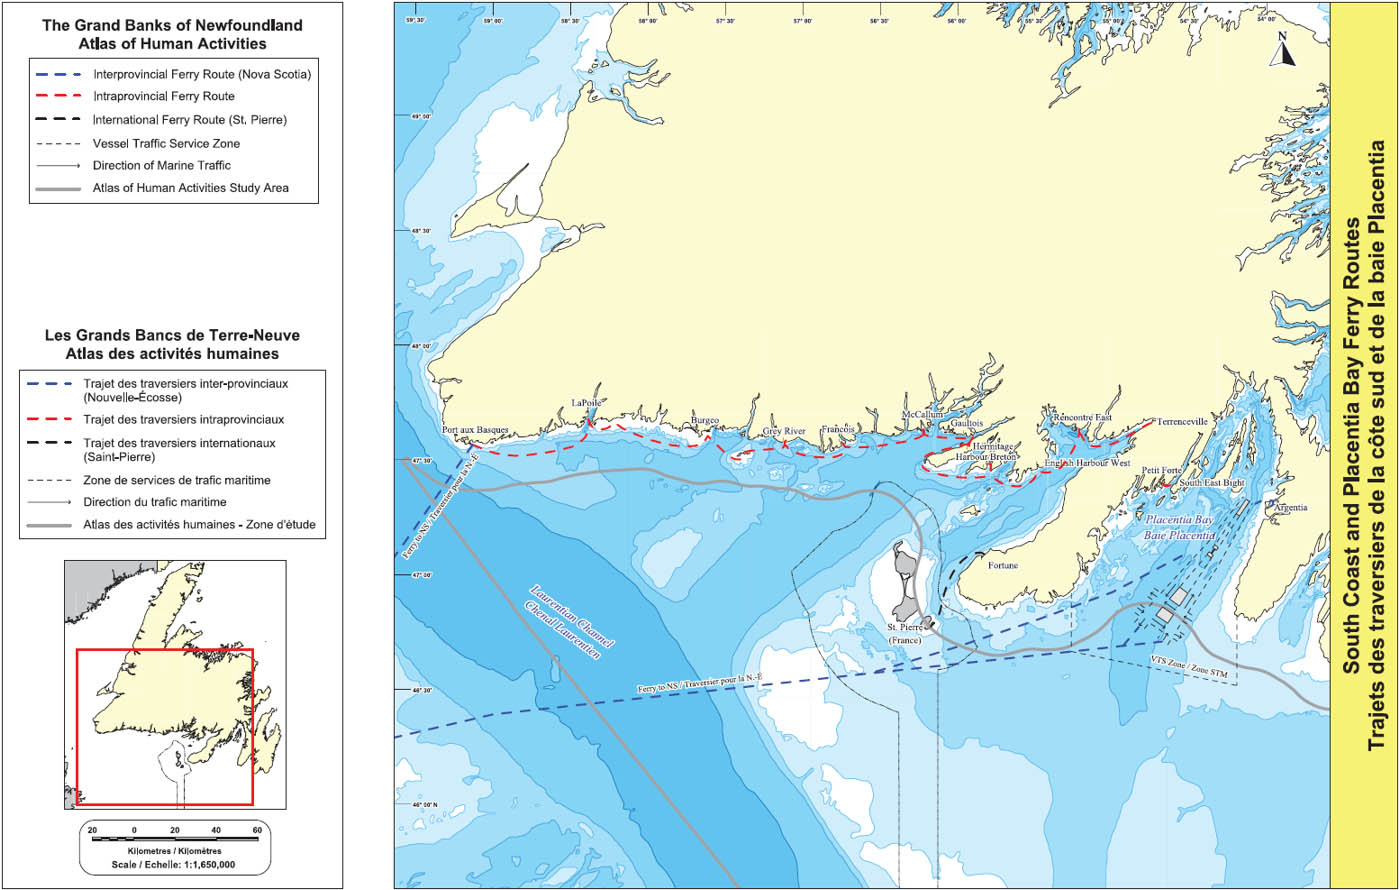 The Grand Banks of Newfoundland: Atlas of Human Activities